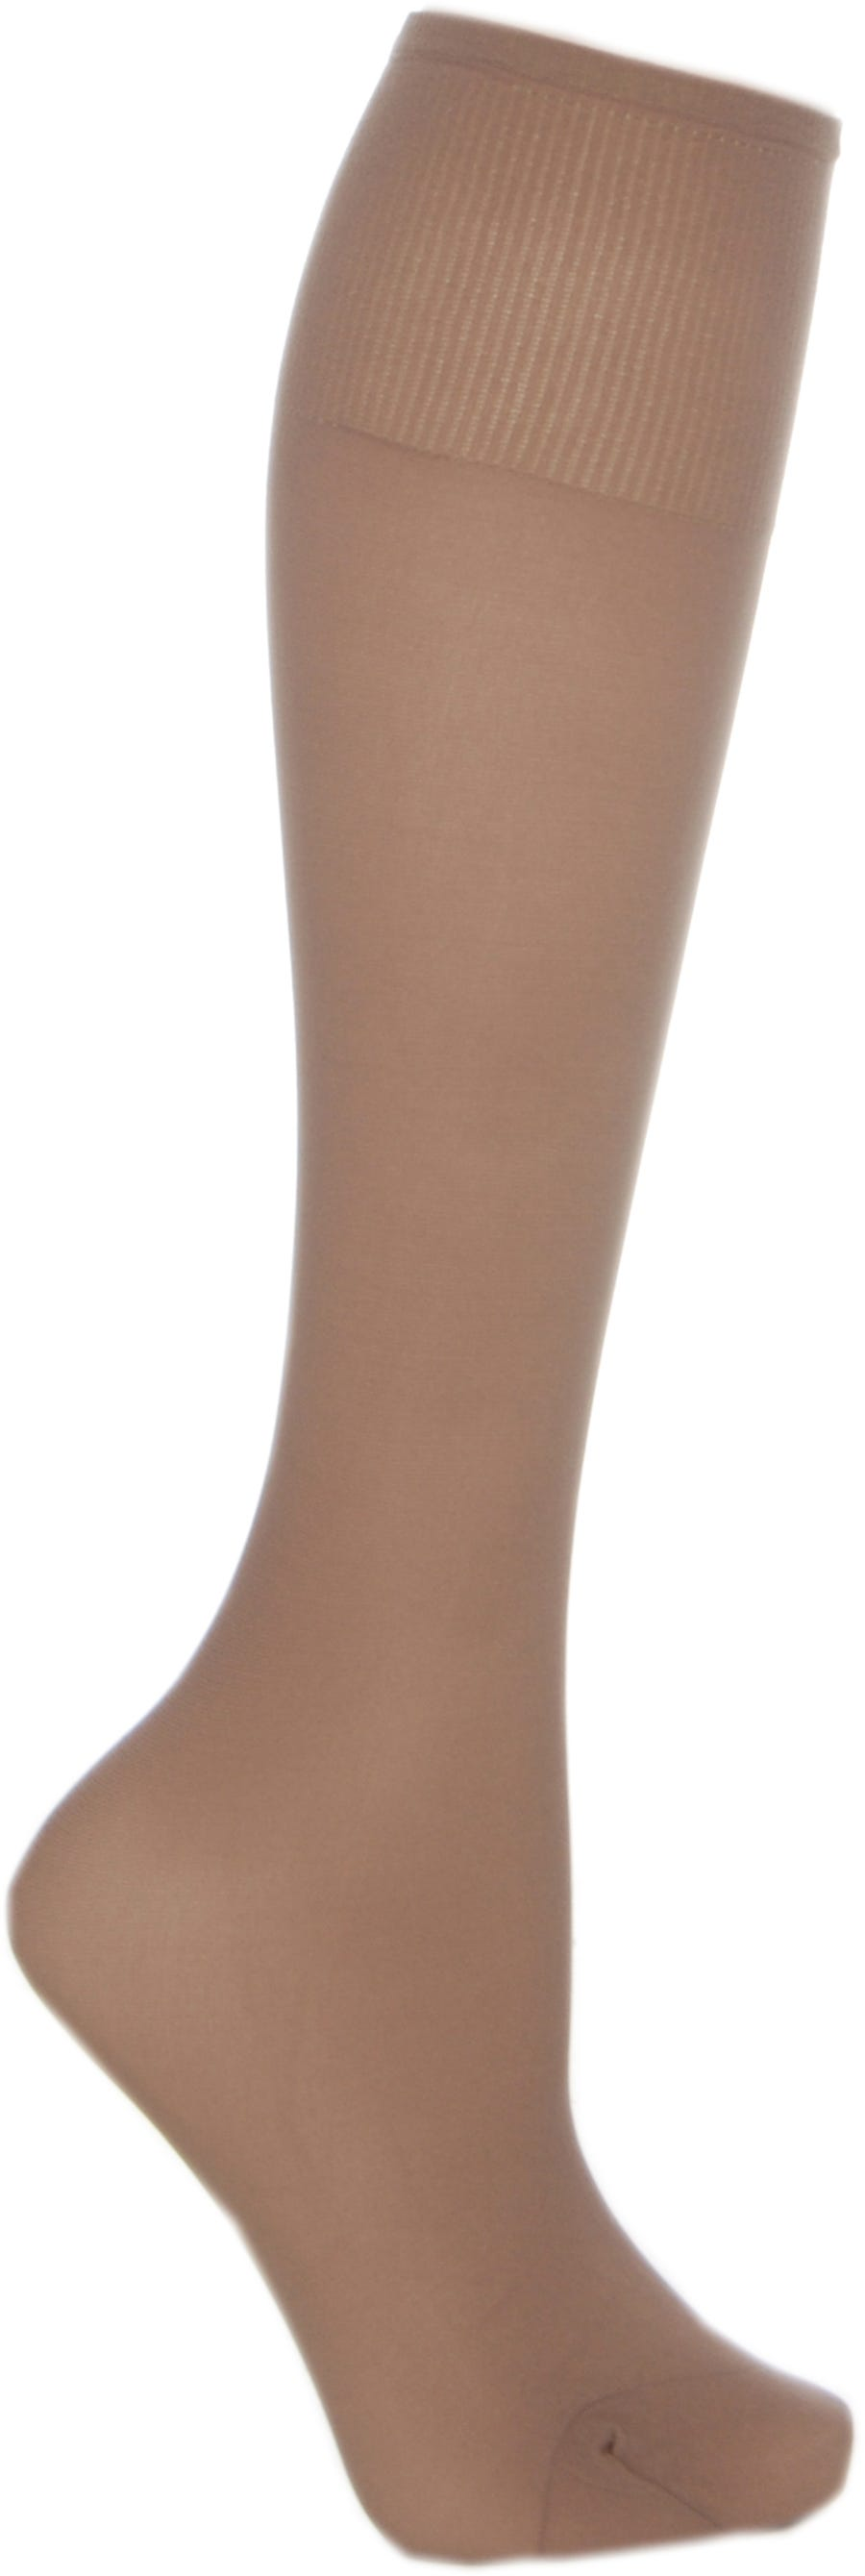 Cosyfeet Extra Roomy Softhold Light Support Knee Highs